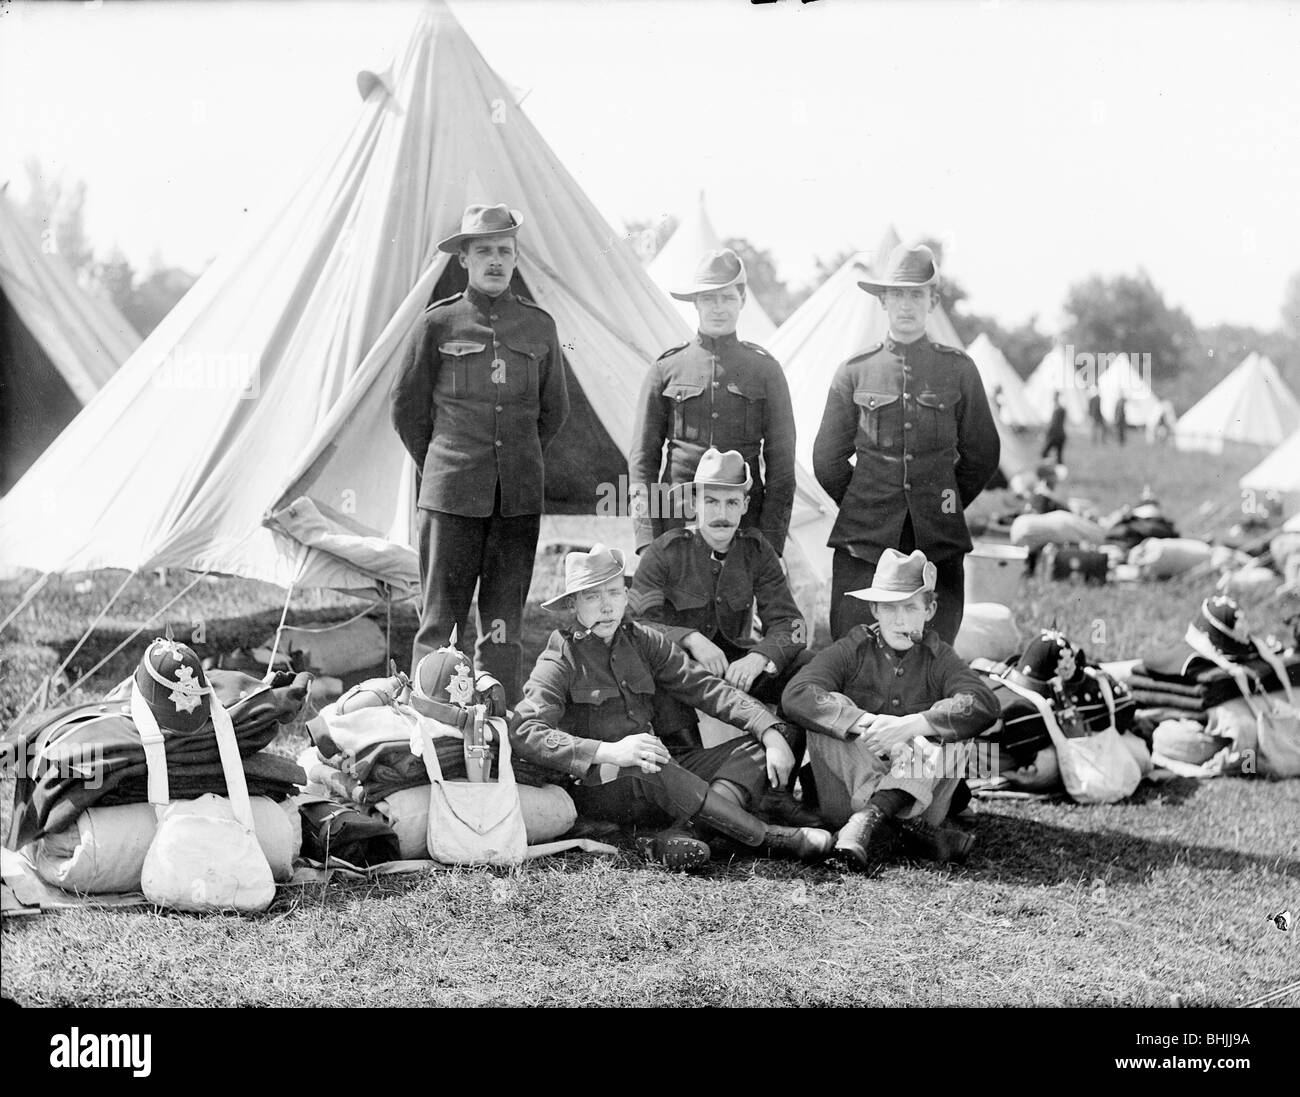 Camping, c1860-c1922. Artist: Henry Taunt - Stock Image